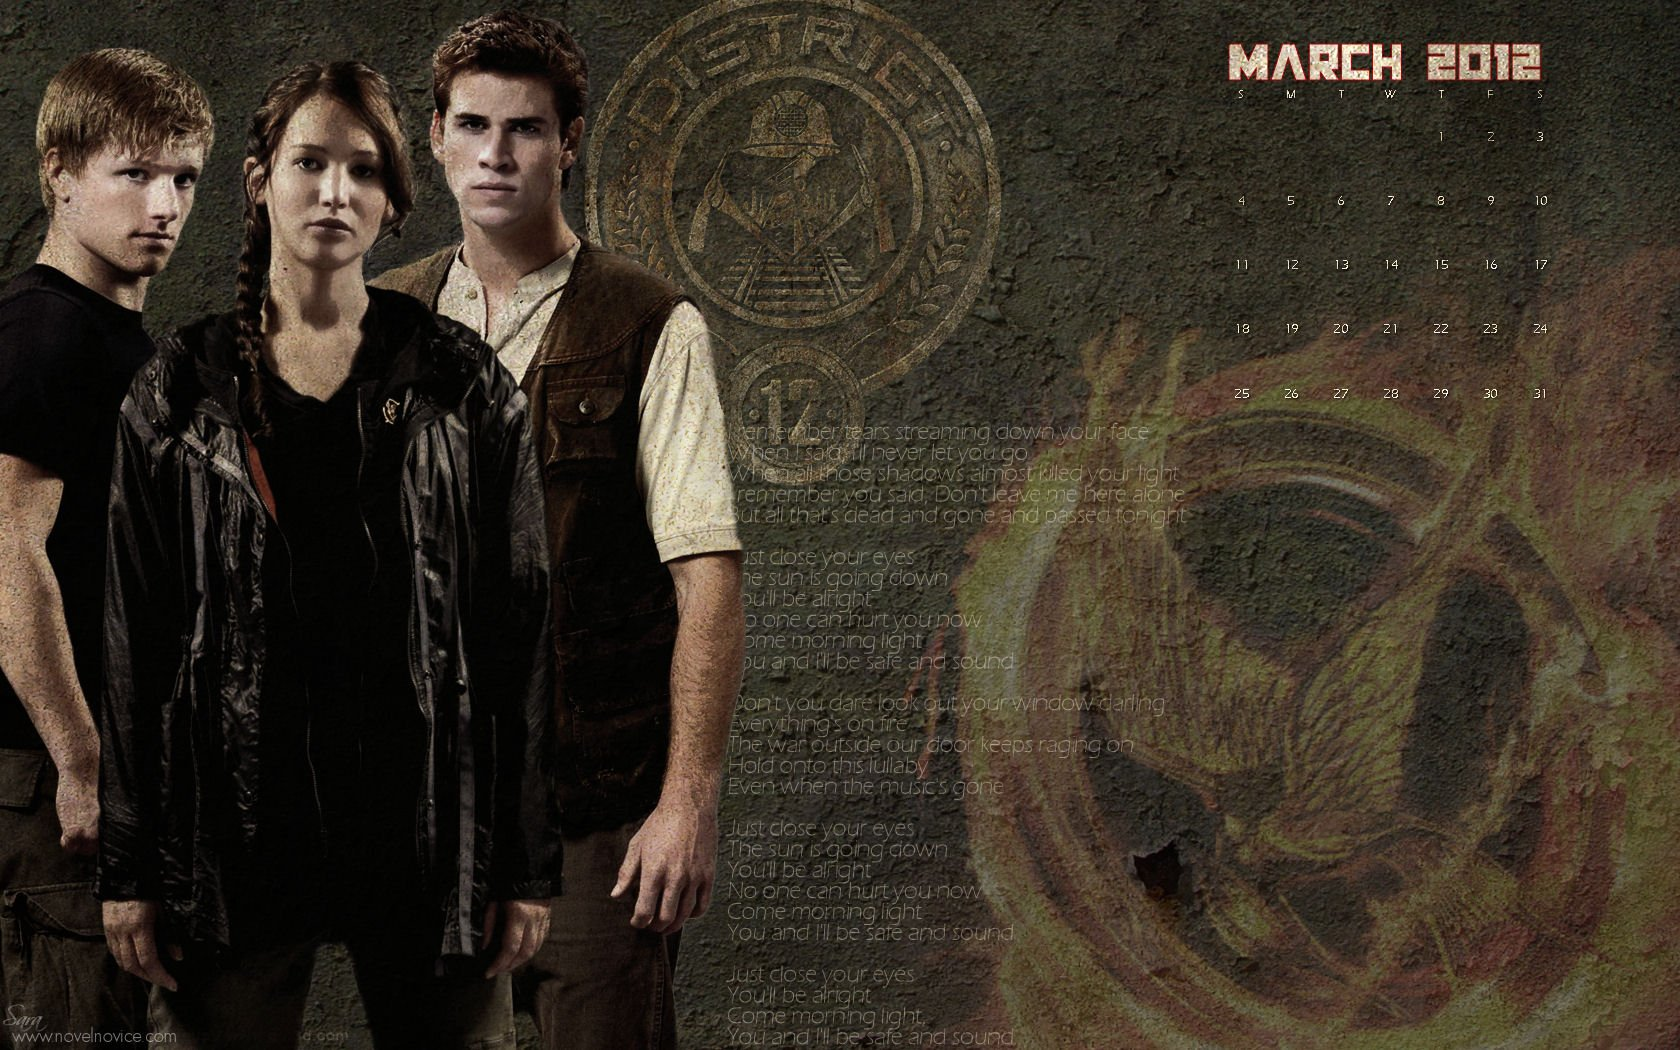 The Hunger Games Wallpapers the hunger games 28043727 1680 1050jpg 1680x1050